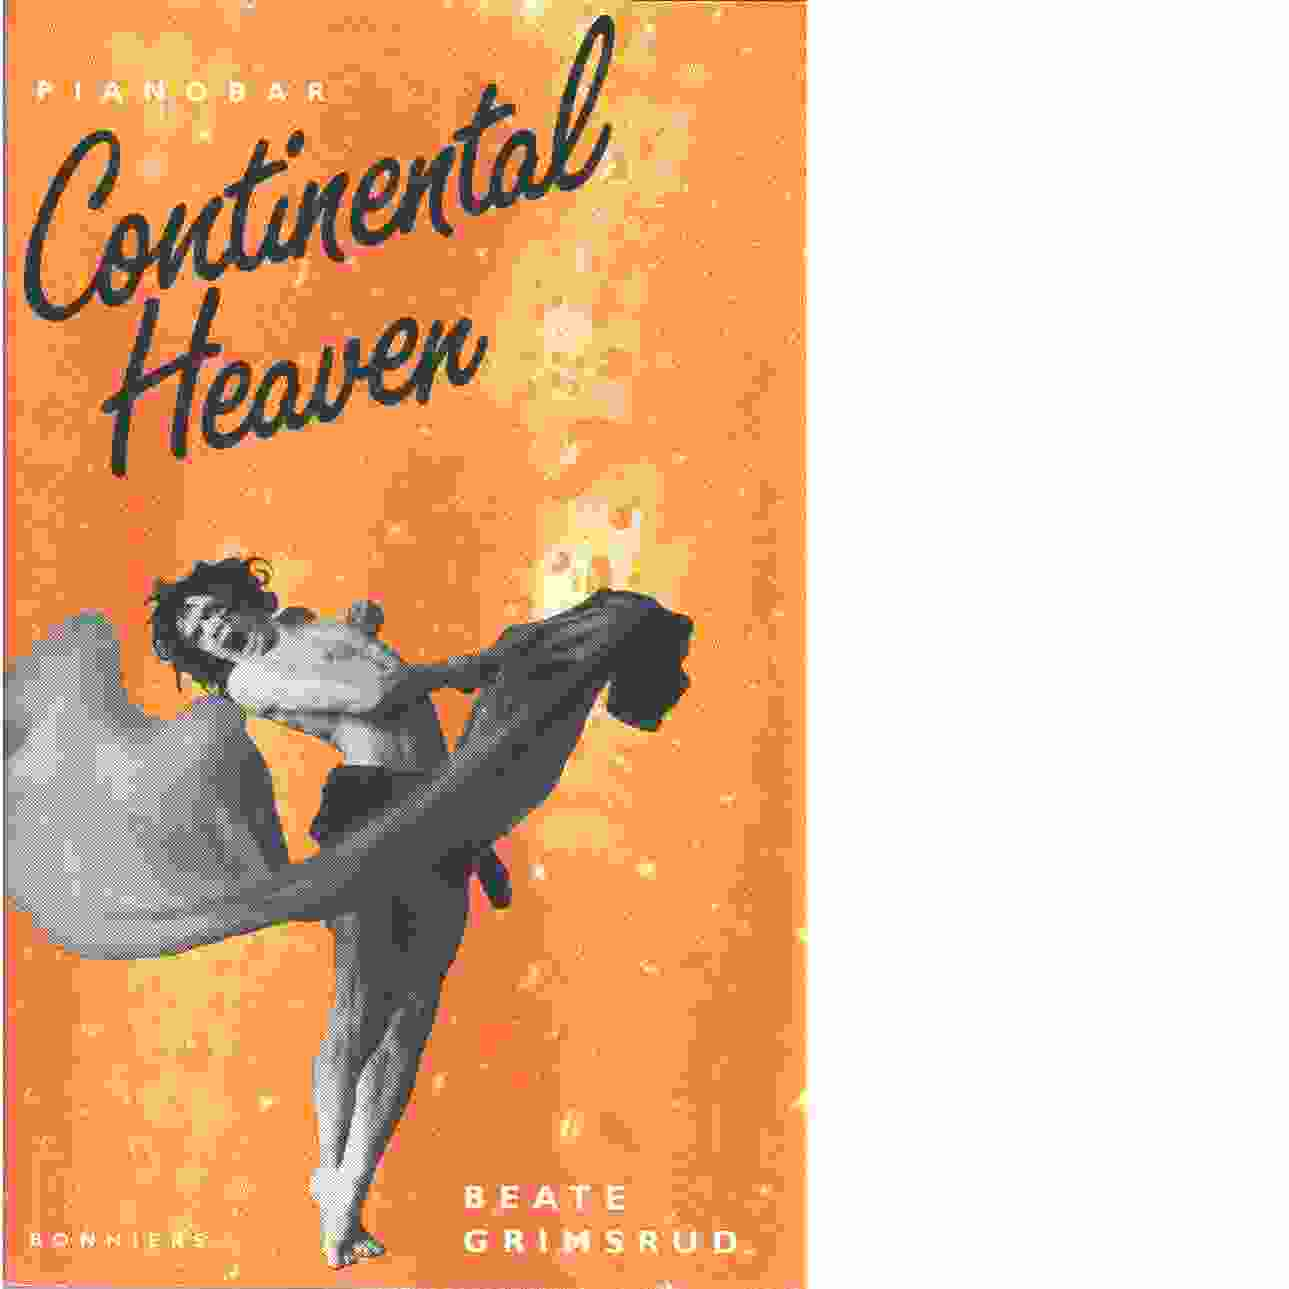 Continental heaven - Grimsrud, Beate